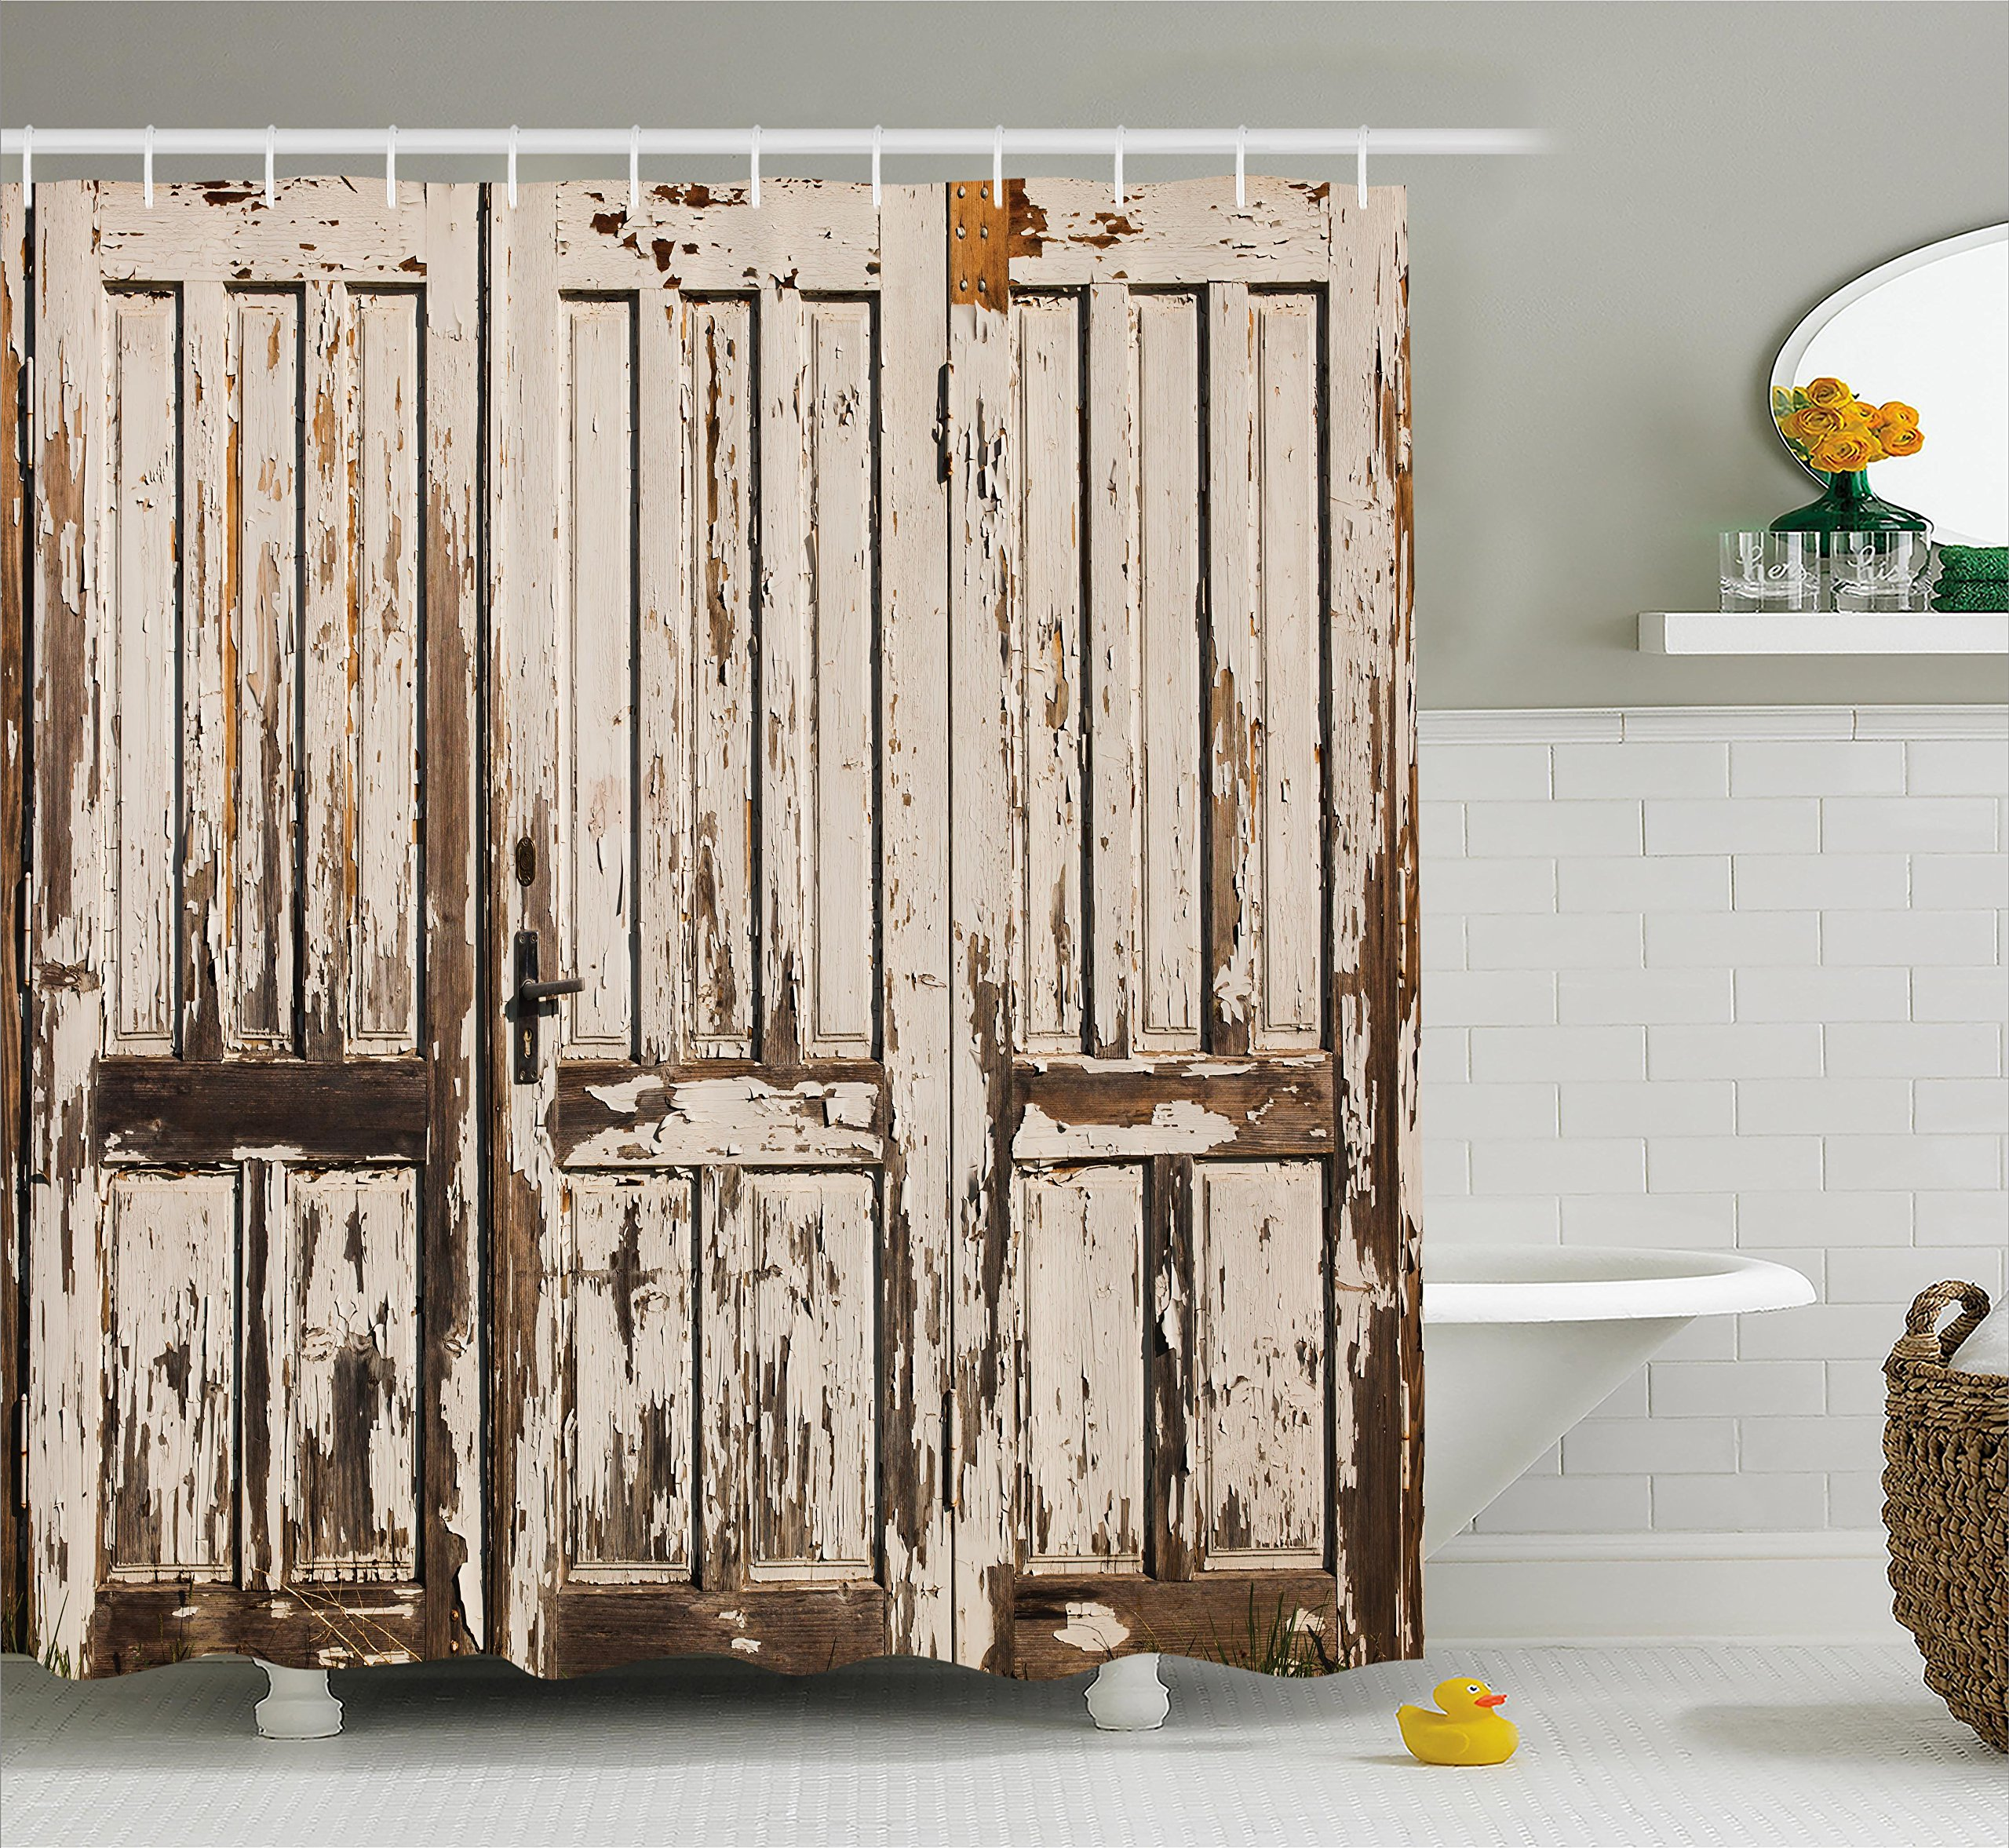 Vintage shower curtains - Rustic Shower Curtain By Ambesonne Vintage House Entrance With Vertical Lined Old Planks Distressed Hardwood